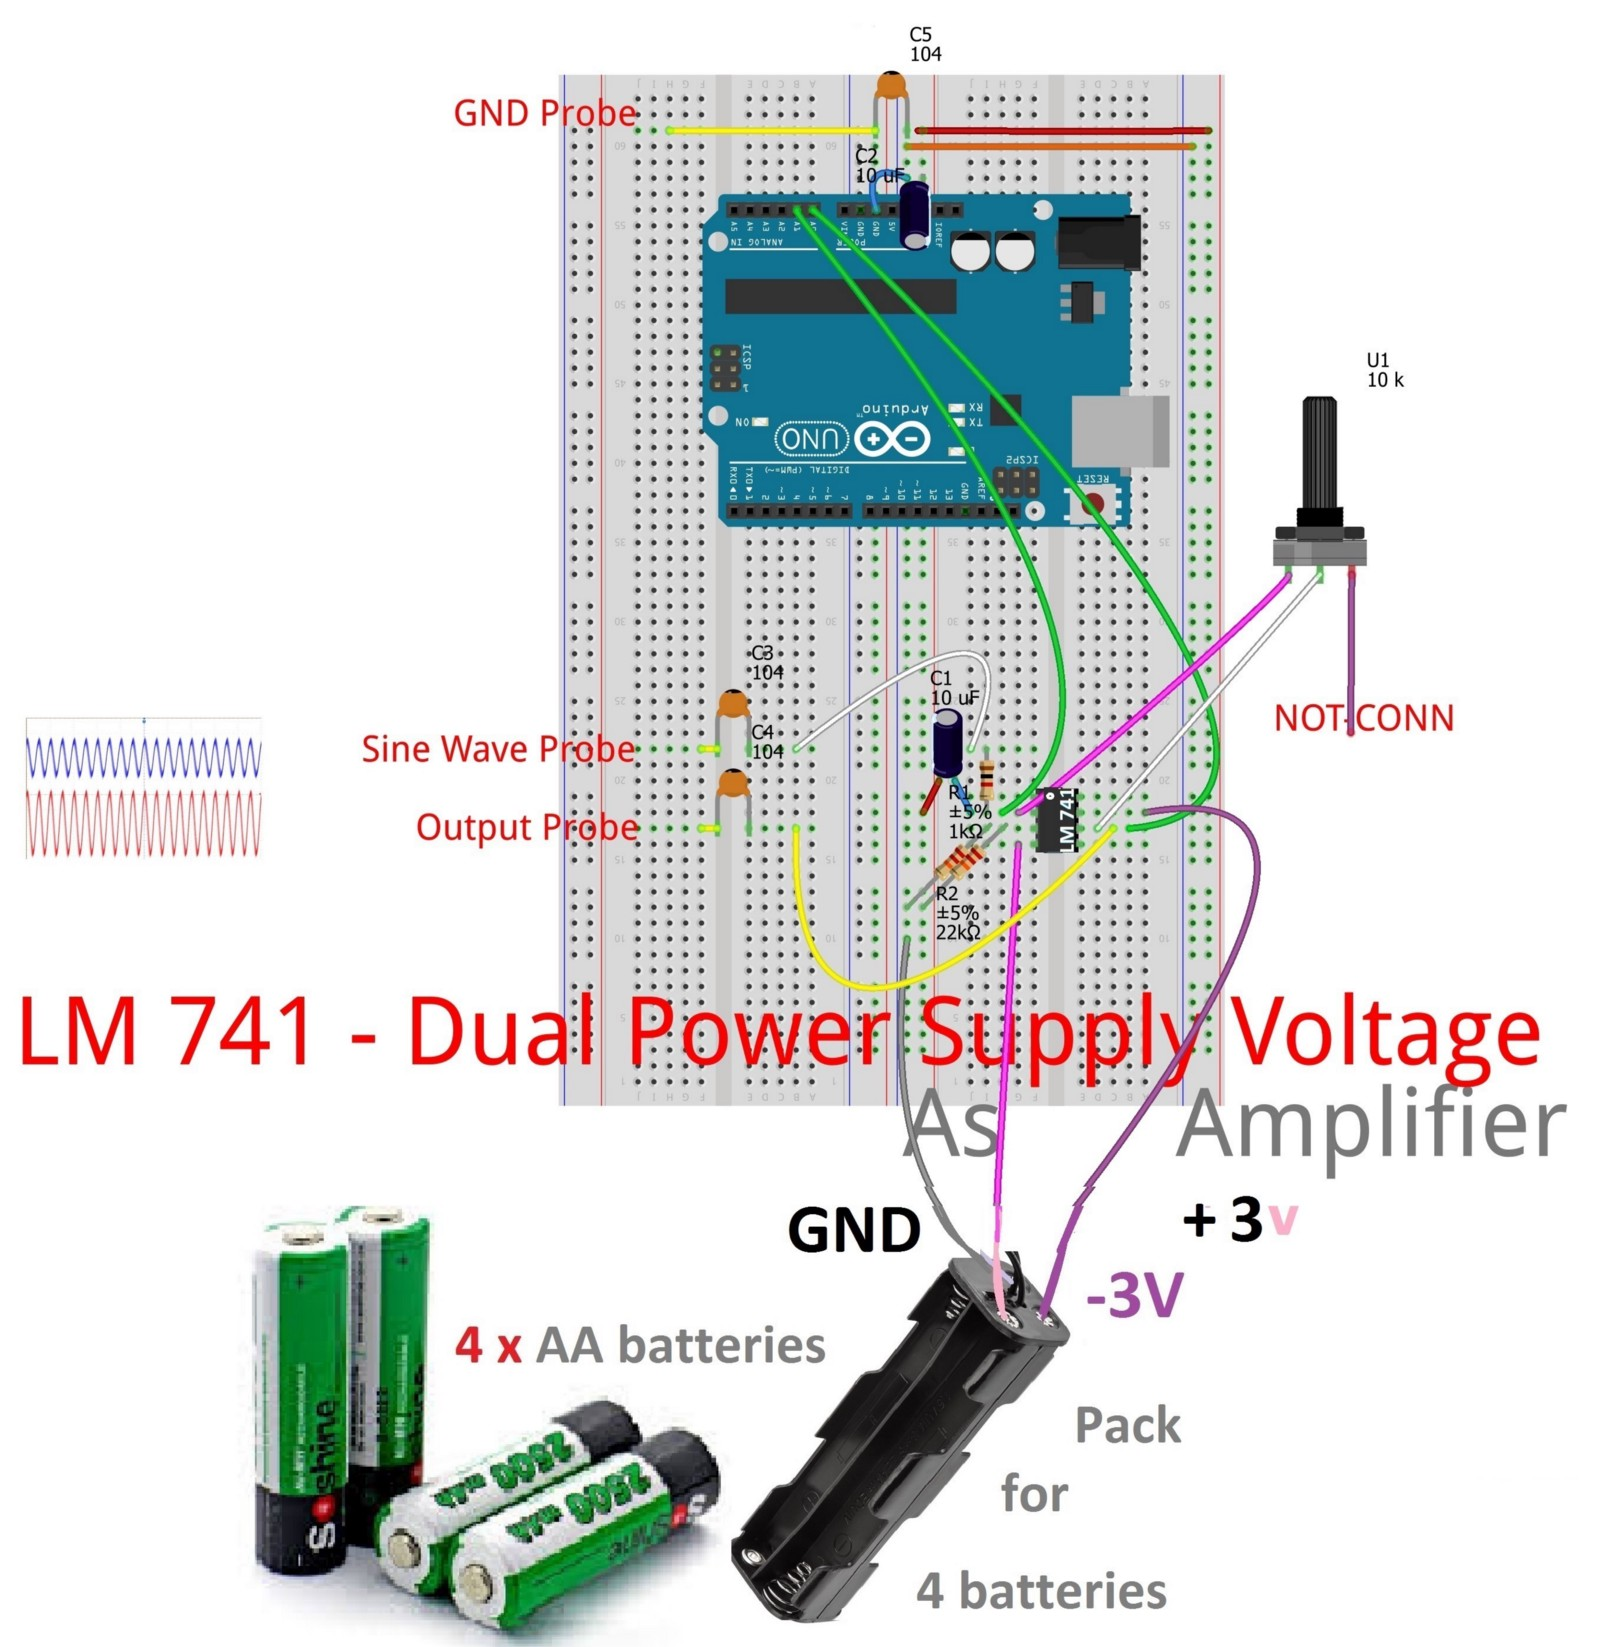 Lm741 As Comparator Opamp Jungletronics Medium Astable Circuit Using Lm741hc Operational Amplifier Output Frequency In A Closed Loop Configuration Negative Feedback Is Used By Applying Portion Of The Voltage To Inverting Input